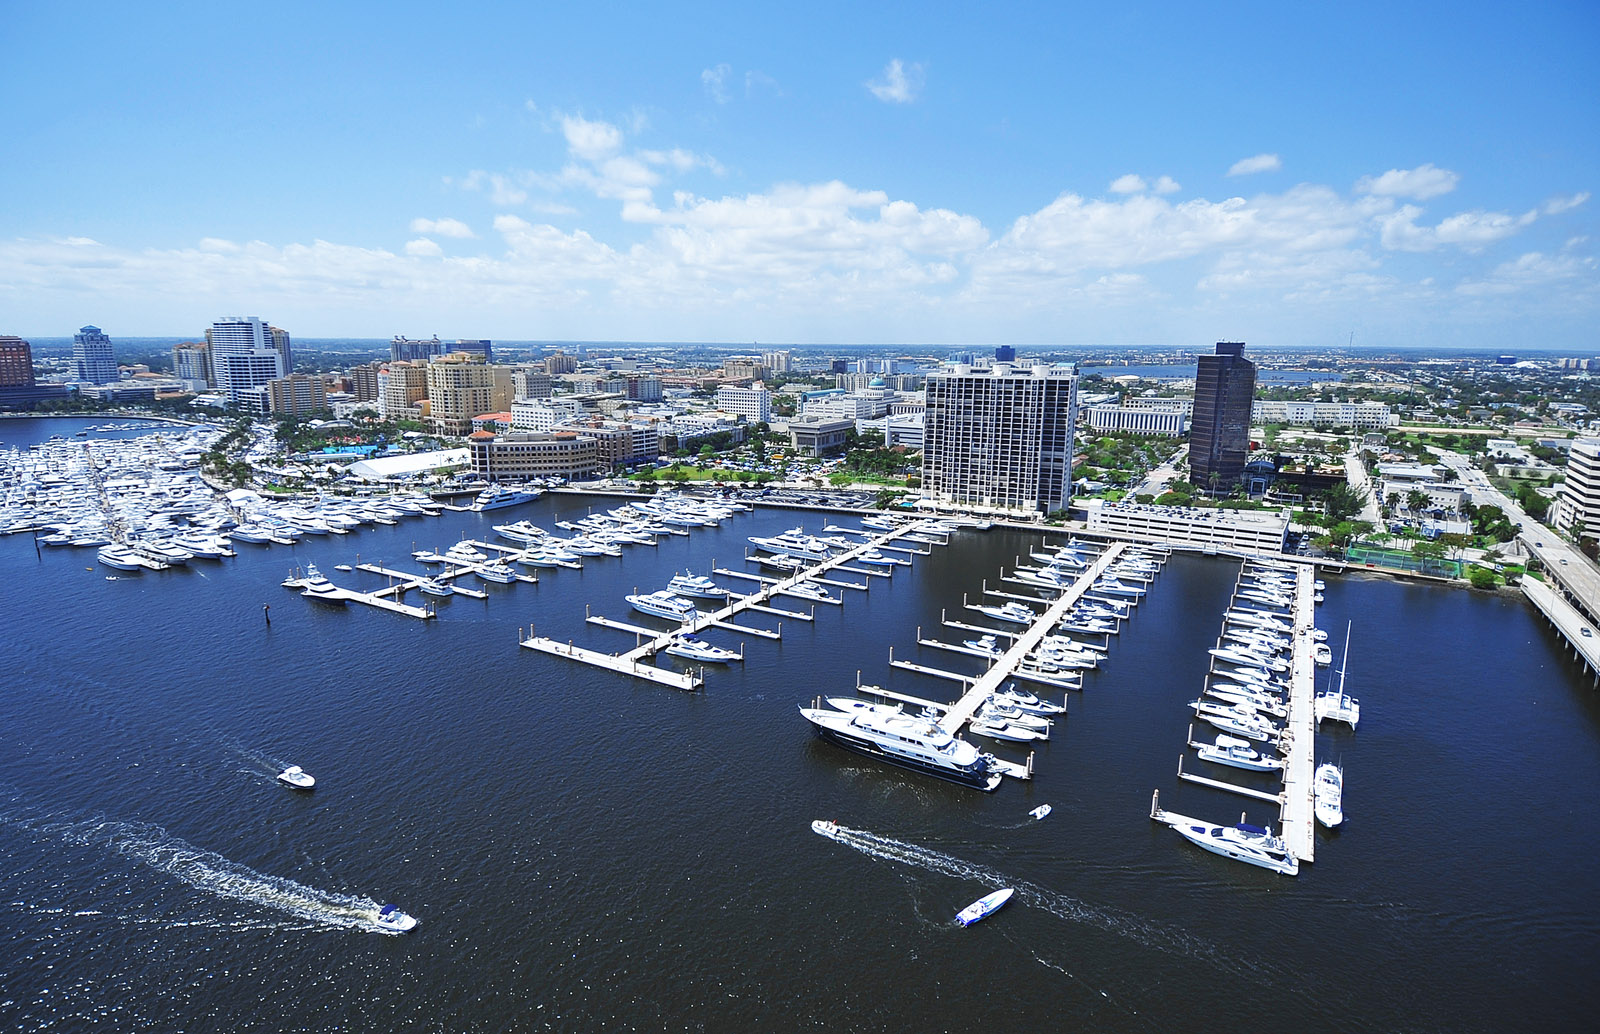 West Palm Beach Marina for Yachts